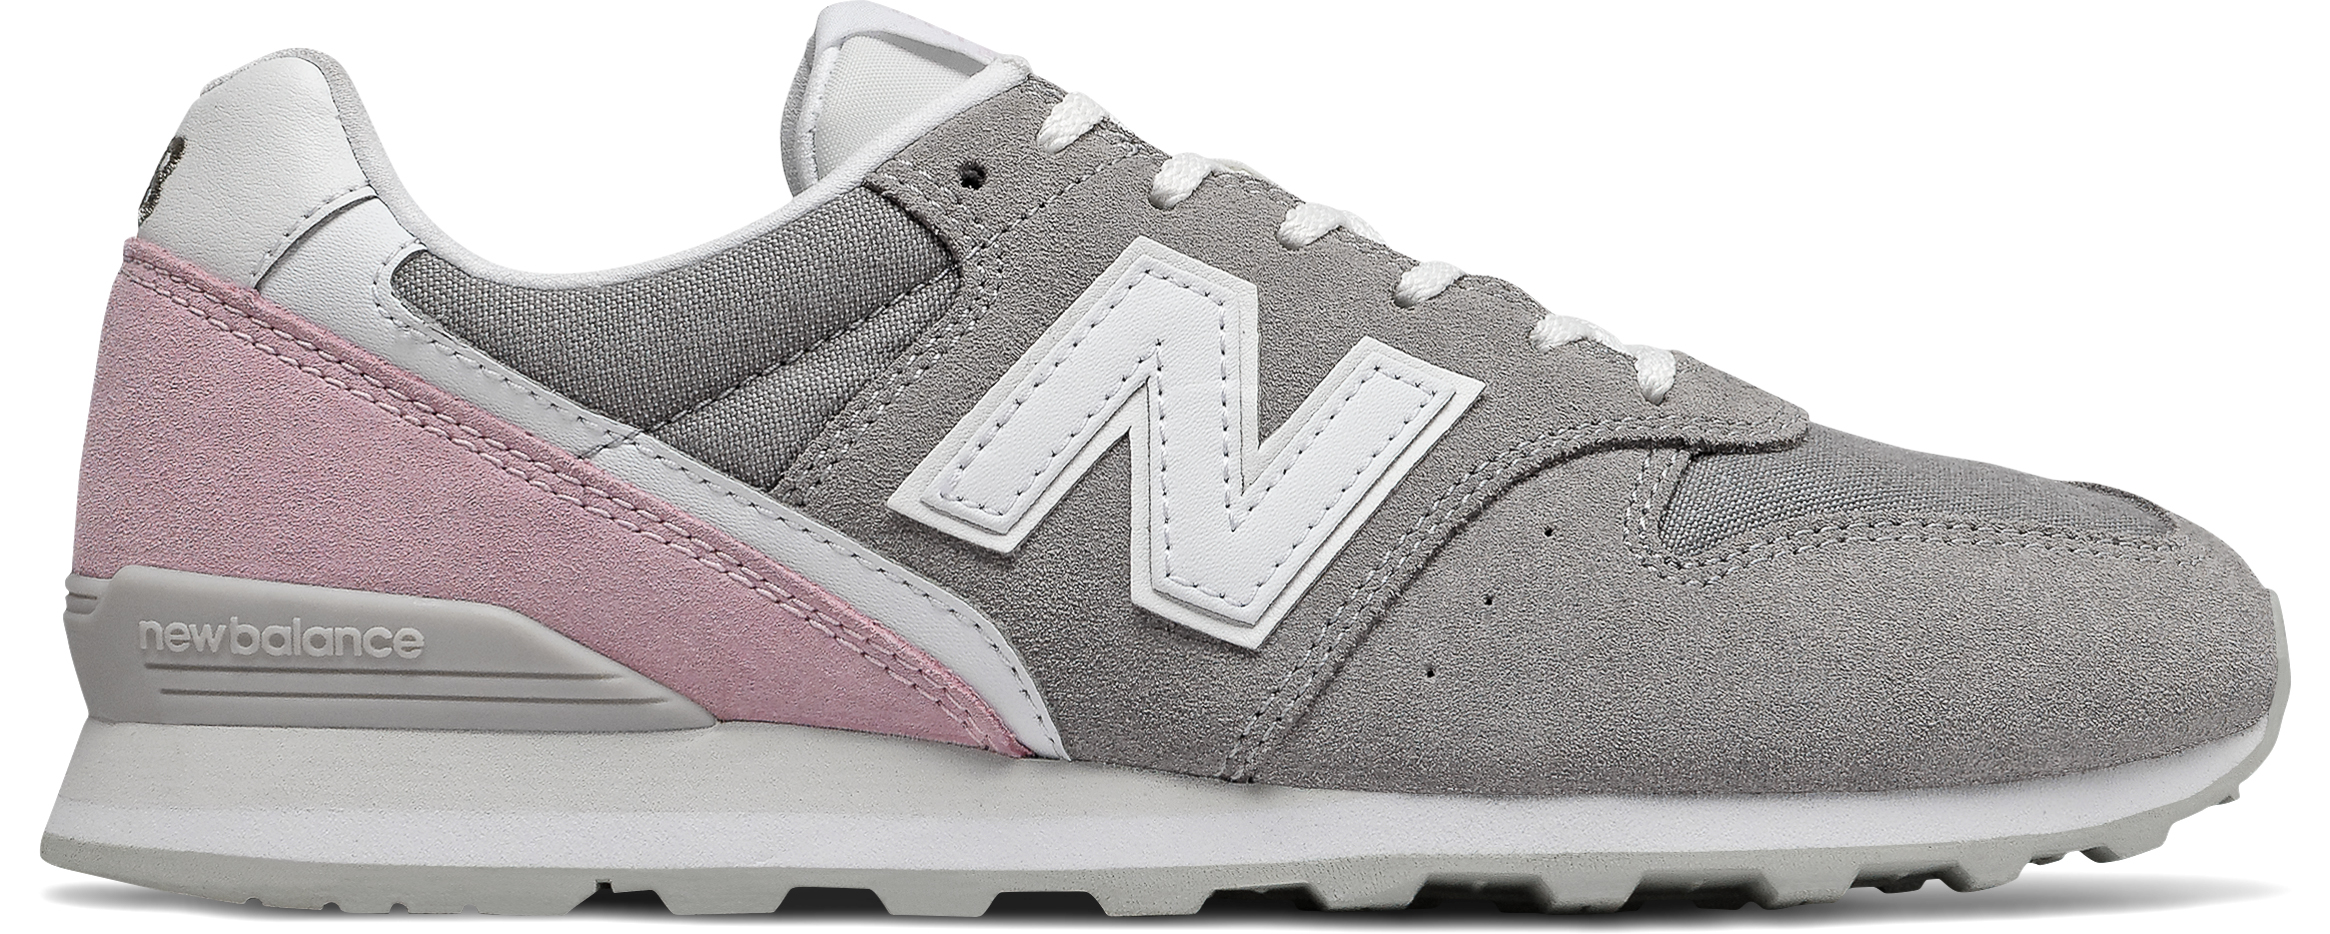 wholesale dealer 3182d b0f01 New Balance 996 V2 Shoes - Women's